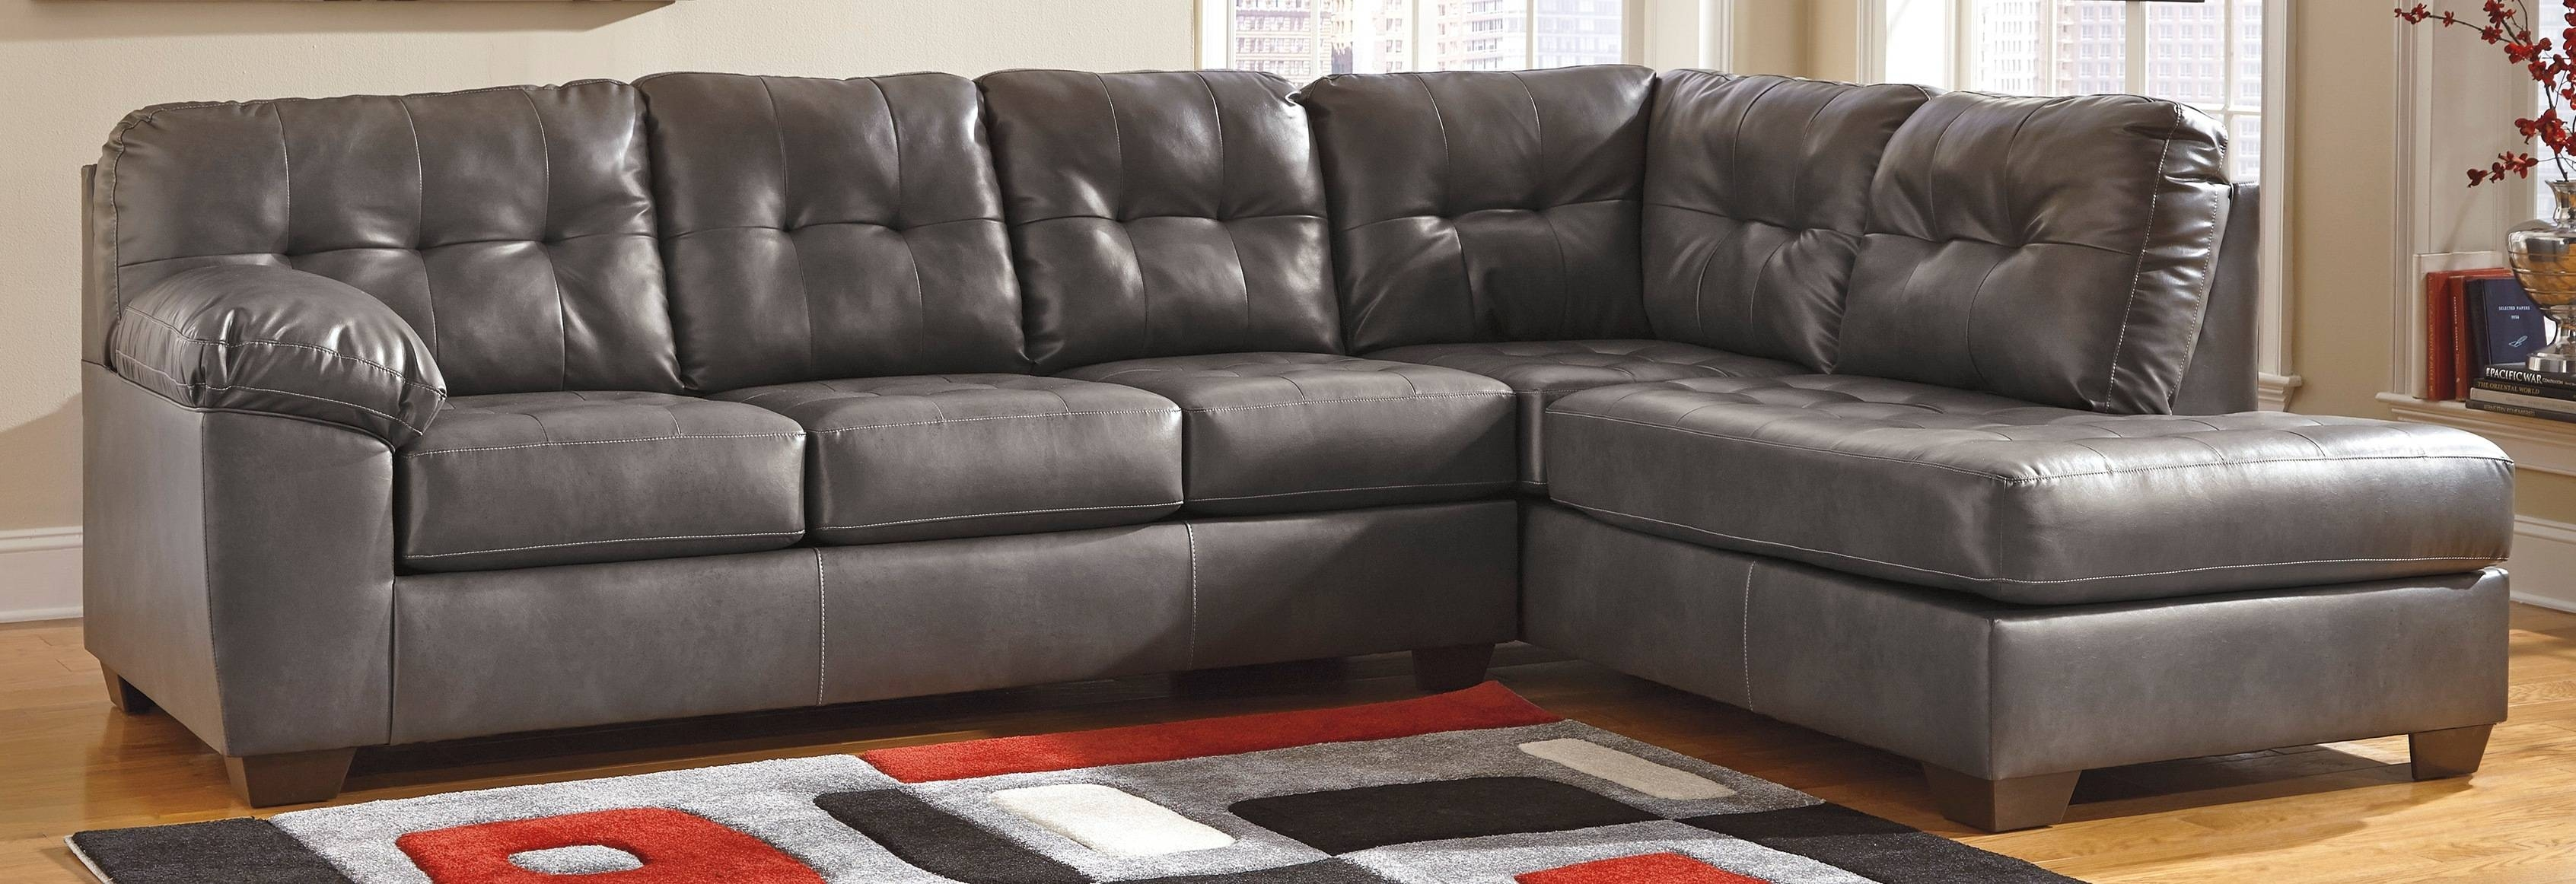 Ashley Furniture Gray Sofa. Rooms To Go Loveseat Ashley Furniture intended for Gray Leather Sectional Sofas (Image 1 of 30)